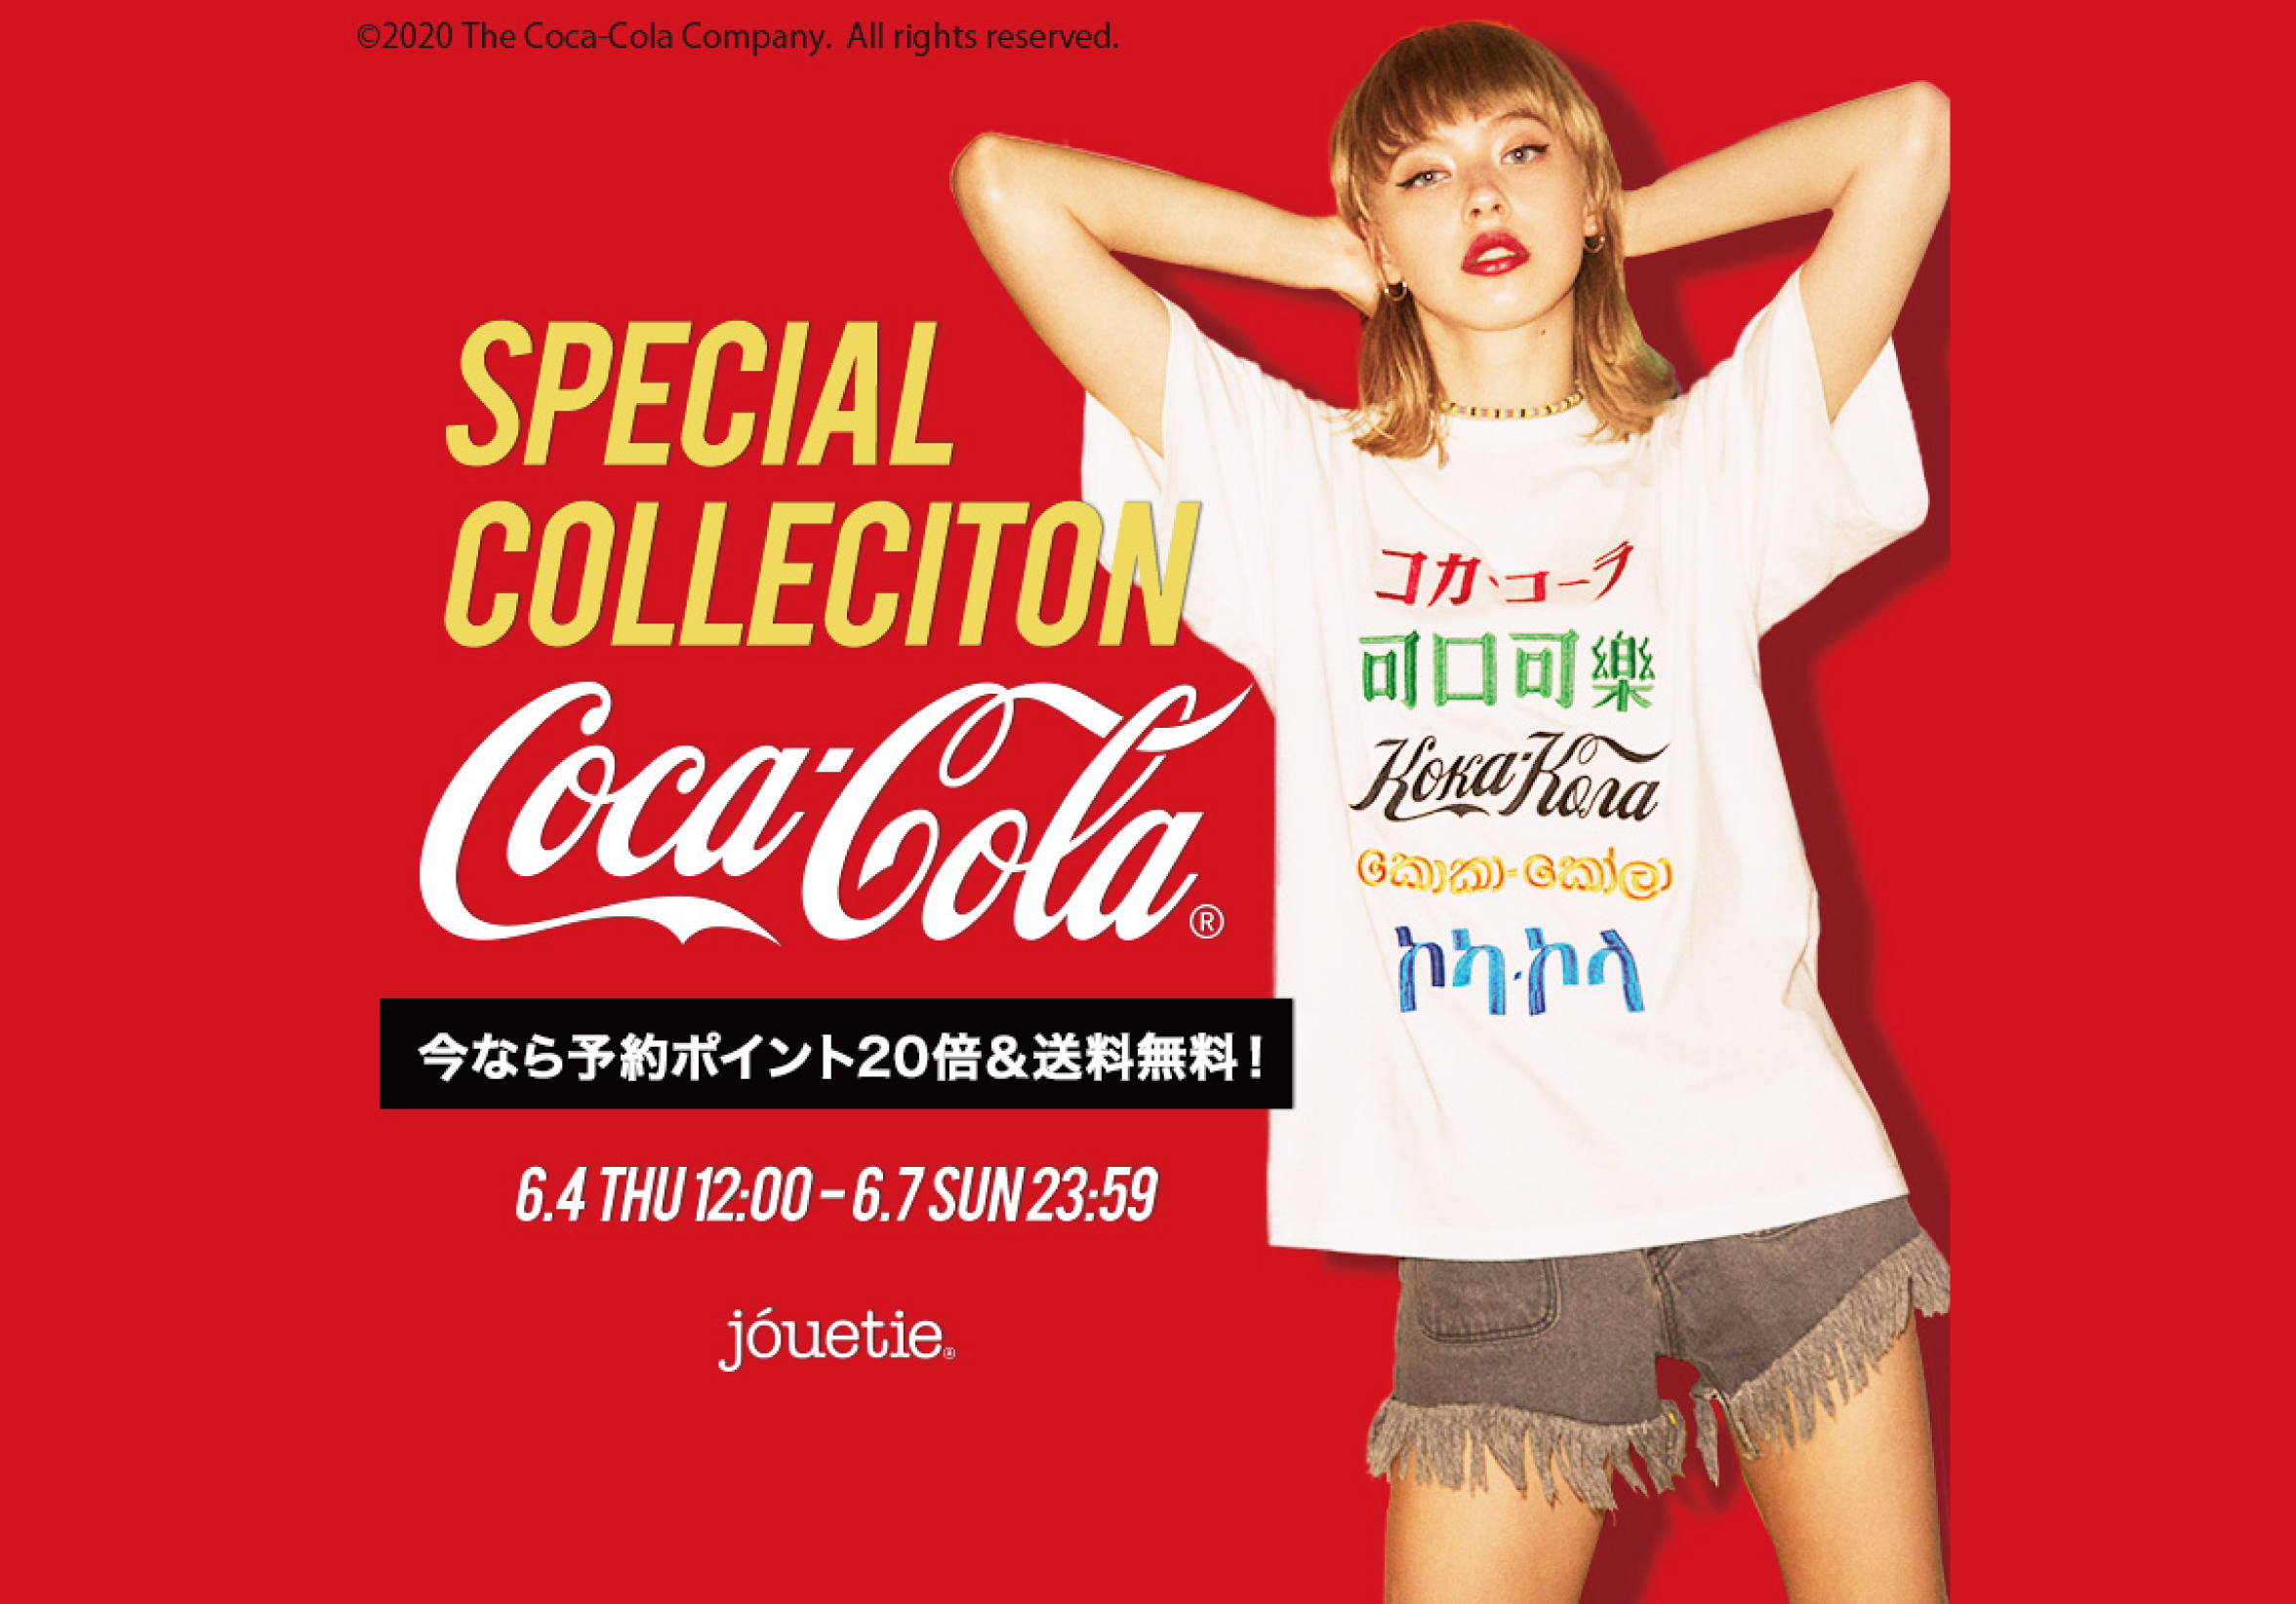 【SPECIAL COLLECTION!】